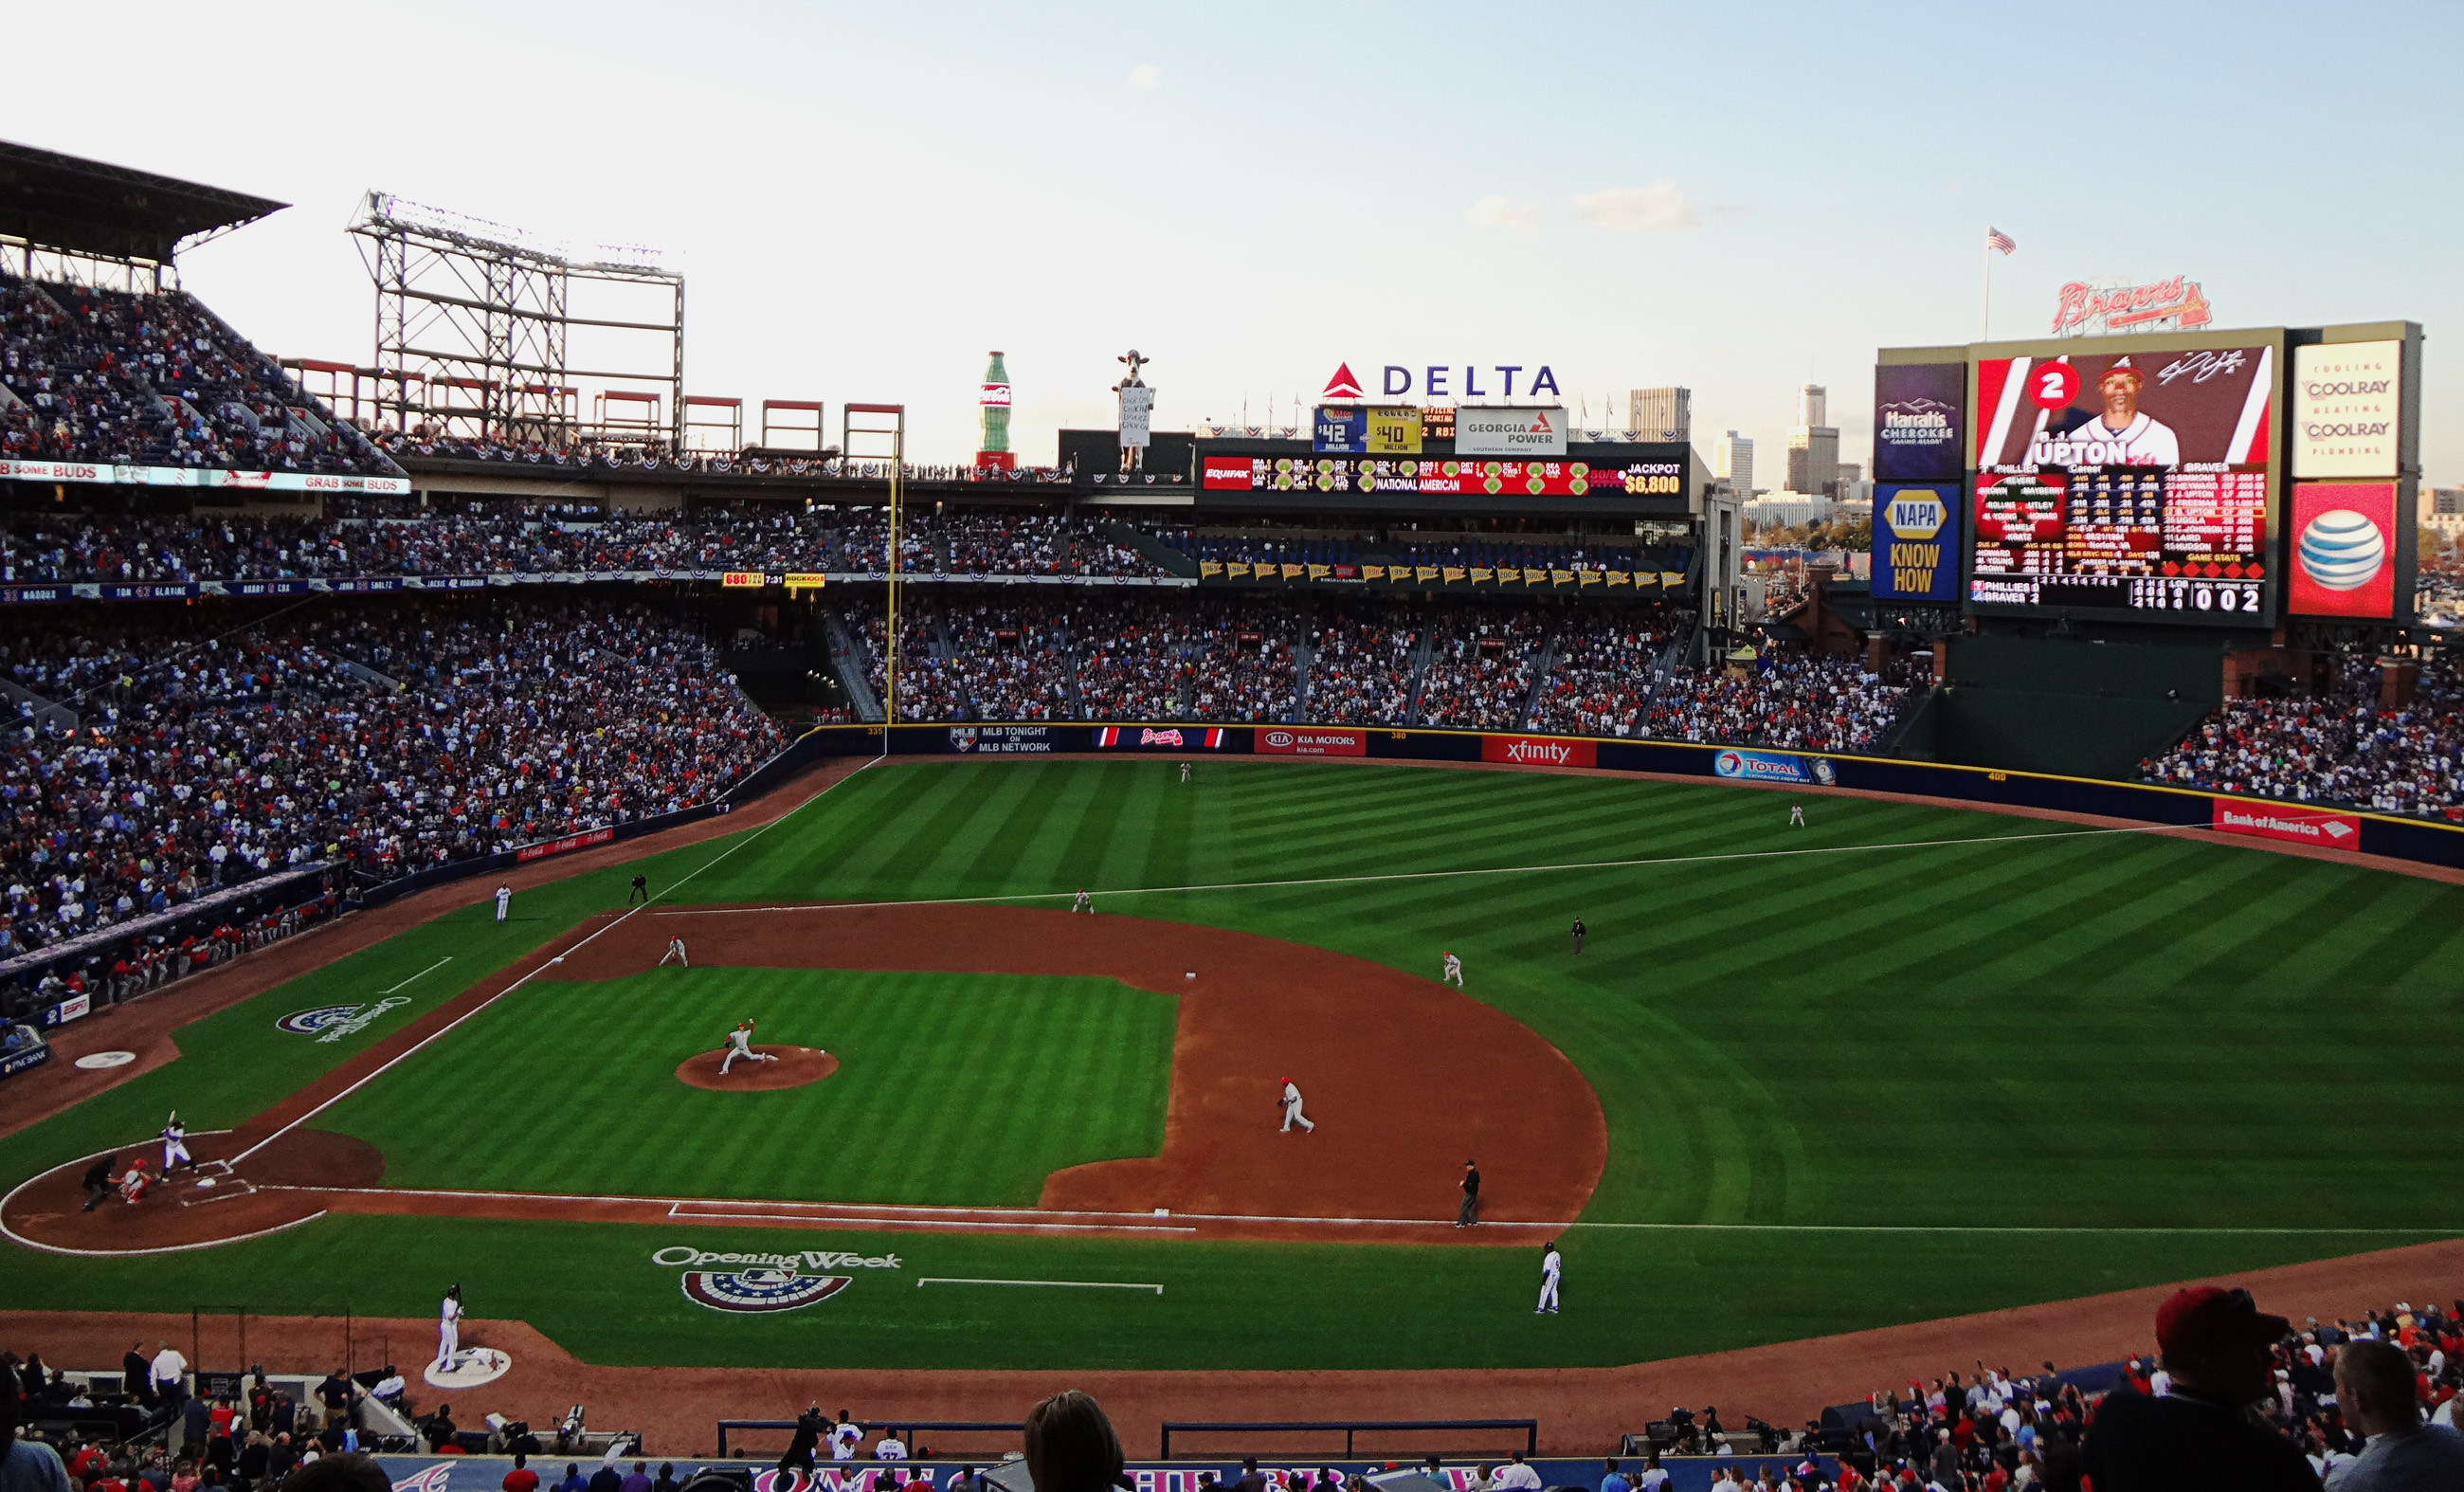 2600x1574 Atlanta Braves Wallpaper for iPad - WallpaperSafari